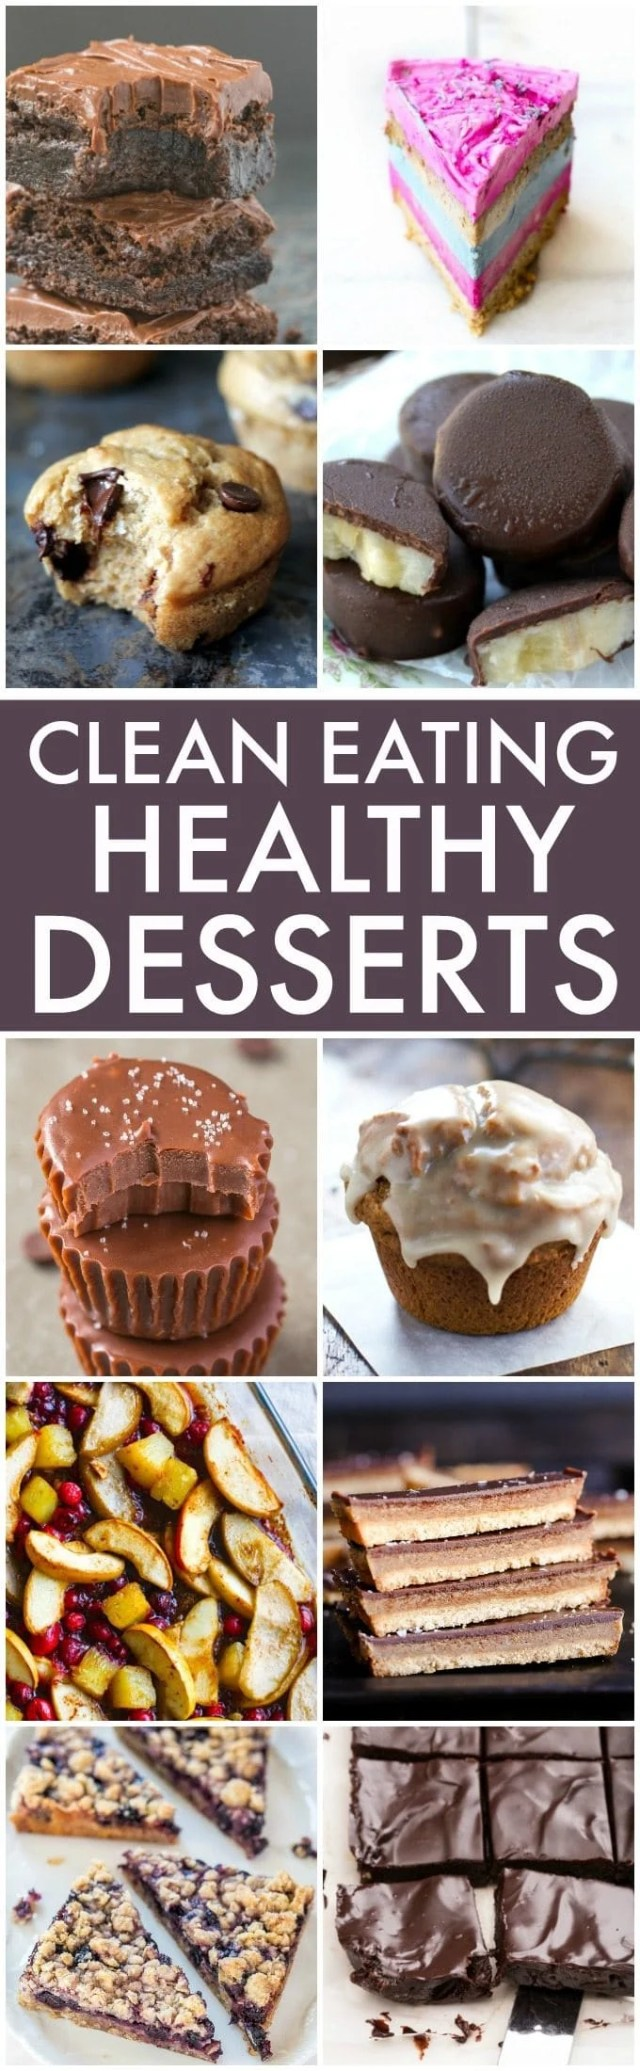 Clean Eating Holiday Desserts (V, GF, Paleo options)- The BEST Clean Eating and Healthy Holiday Desserts, snacks and sweets perfect for Christmas, the festive season, gifts or anytime- Flourless, muffins, bars, brownies, and sugar free options! {vegan, gluten free, paleo recipe options}- thebigmansworld.com